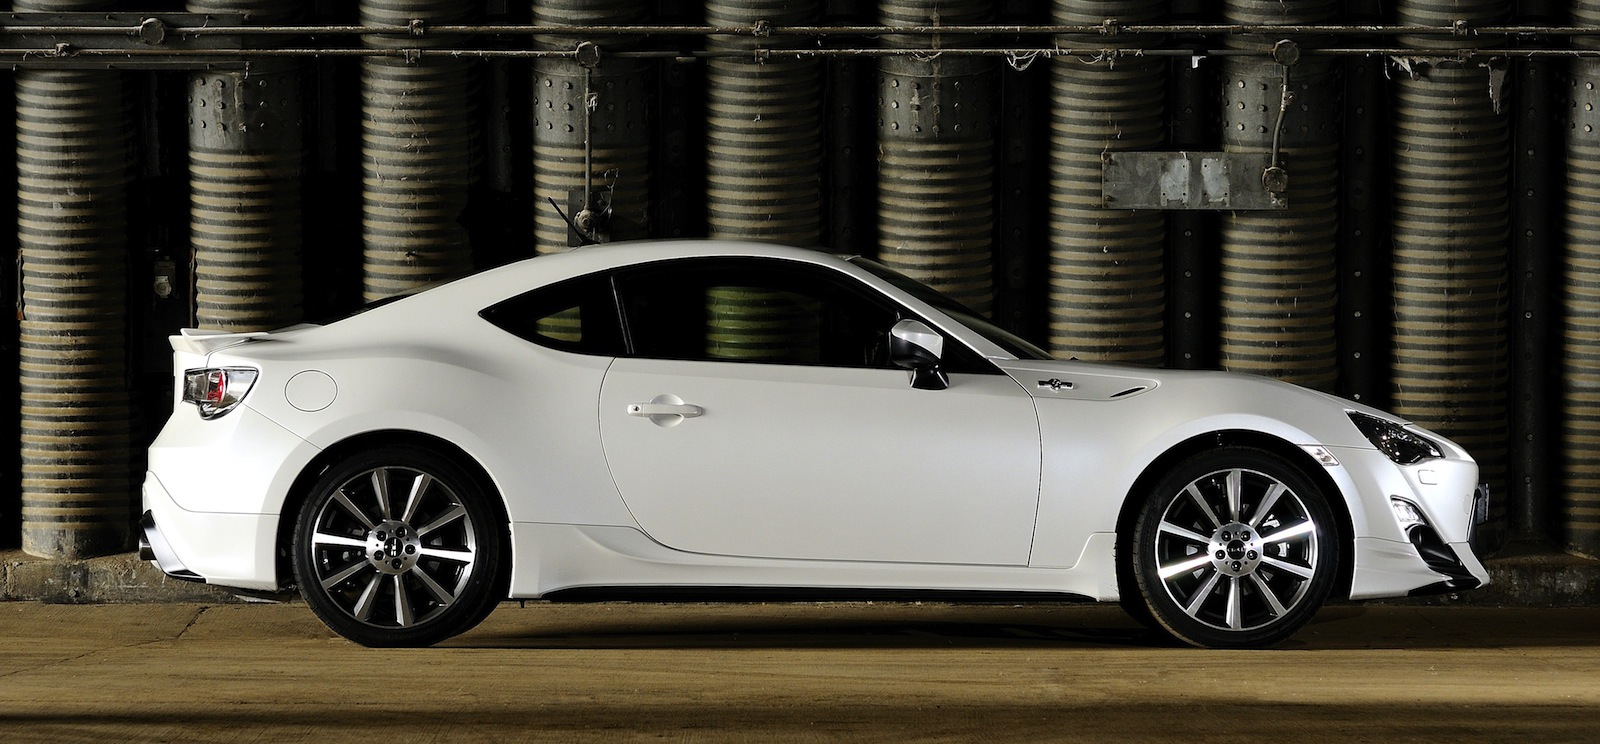 Mazda Cx 3 >> Toyota 86 TRD: limited edition model set for UK release - Photos (1 of 5)